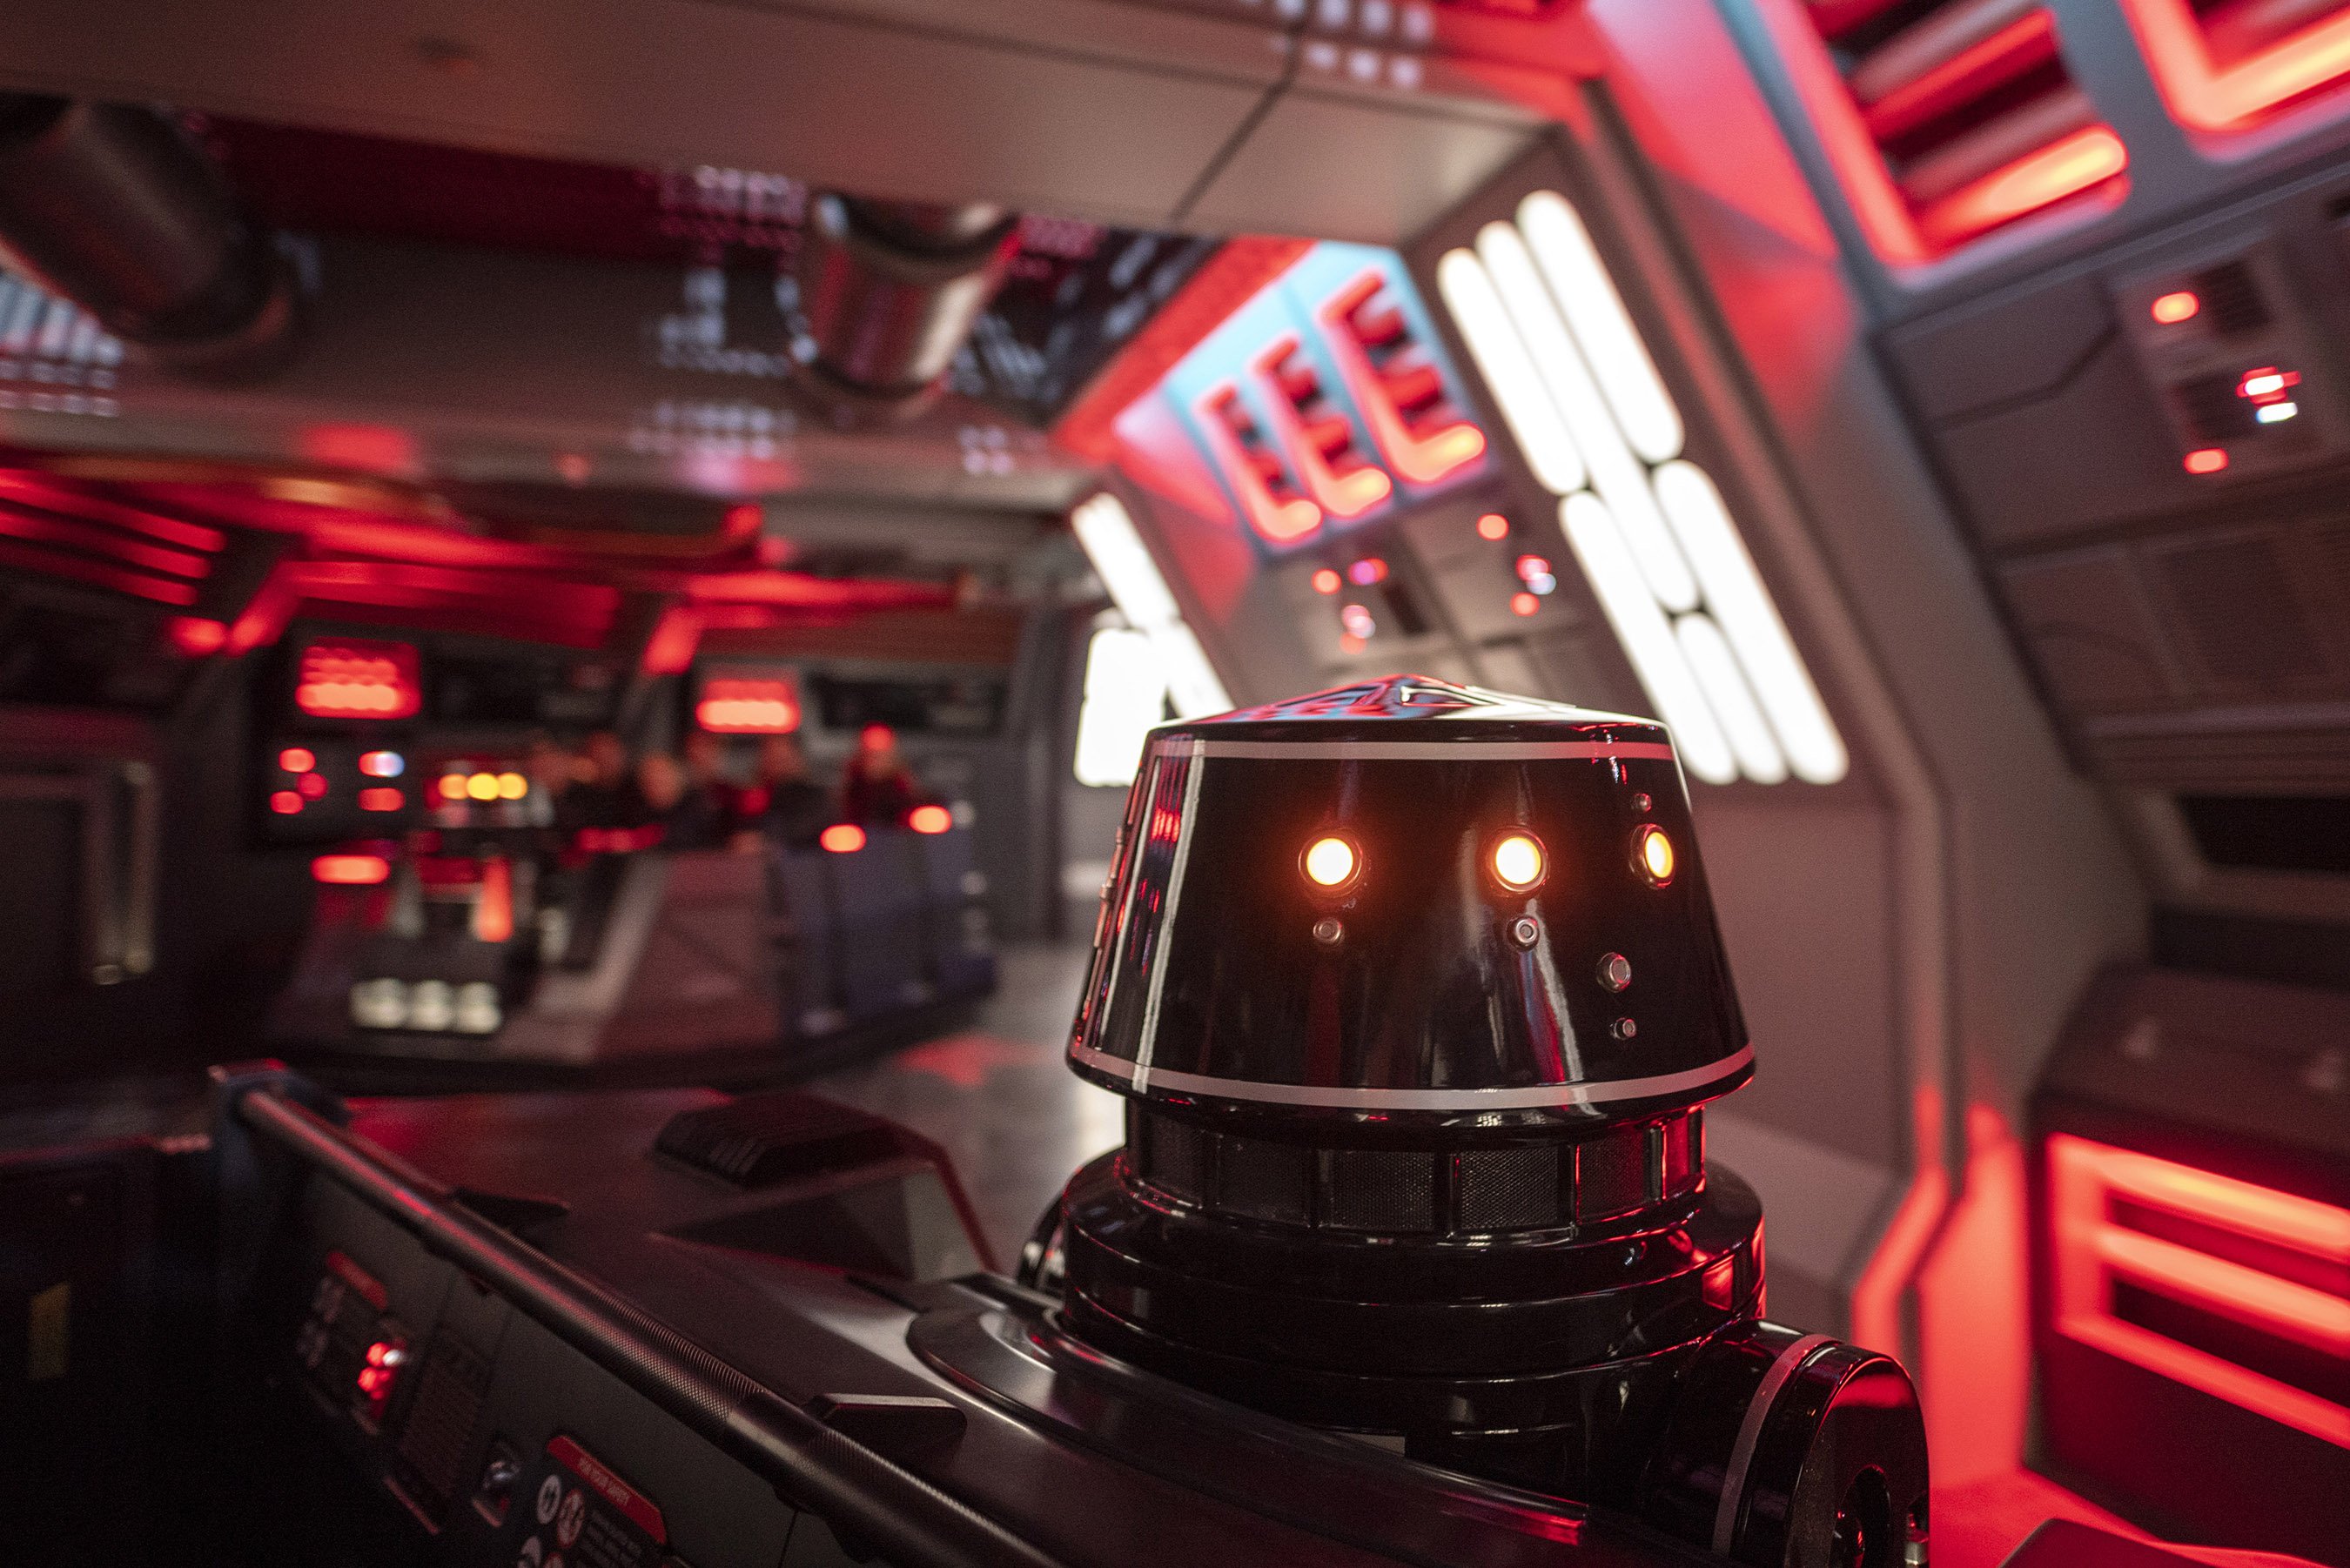 First Order R5-series astromech droids pilot troop transports onboard a Star Destroyer in Star Wars: Rise of the Resistance.